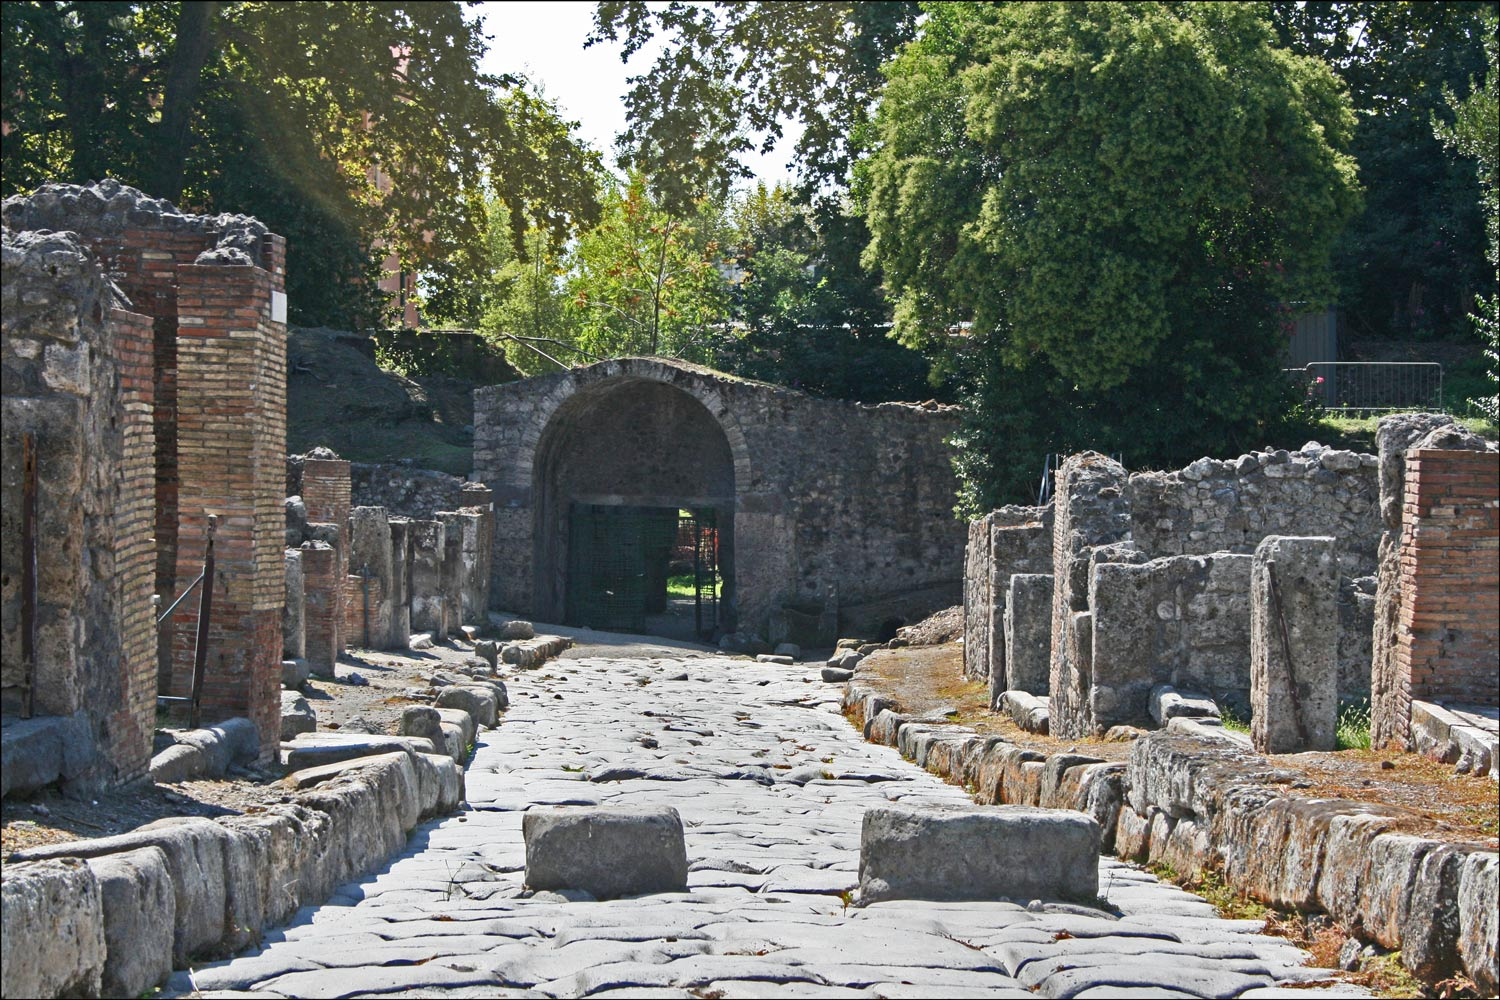 Stabian Gate and Via Stabiana